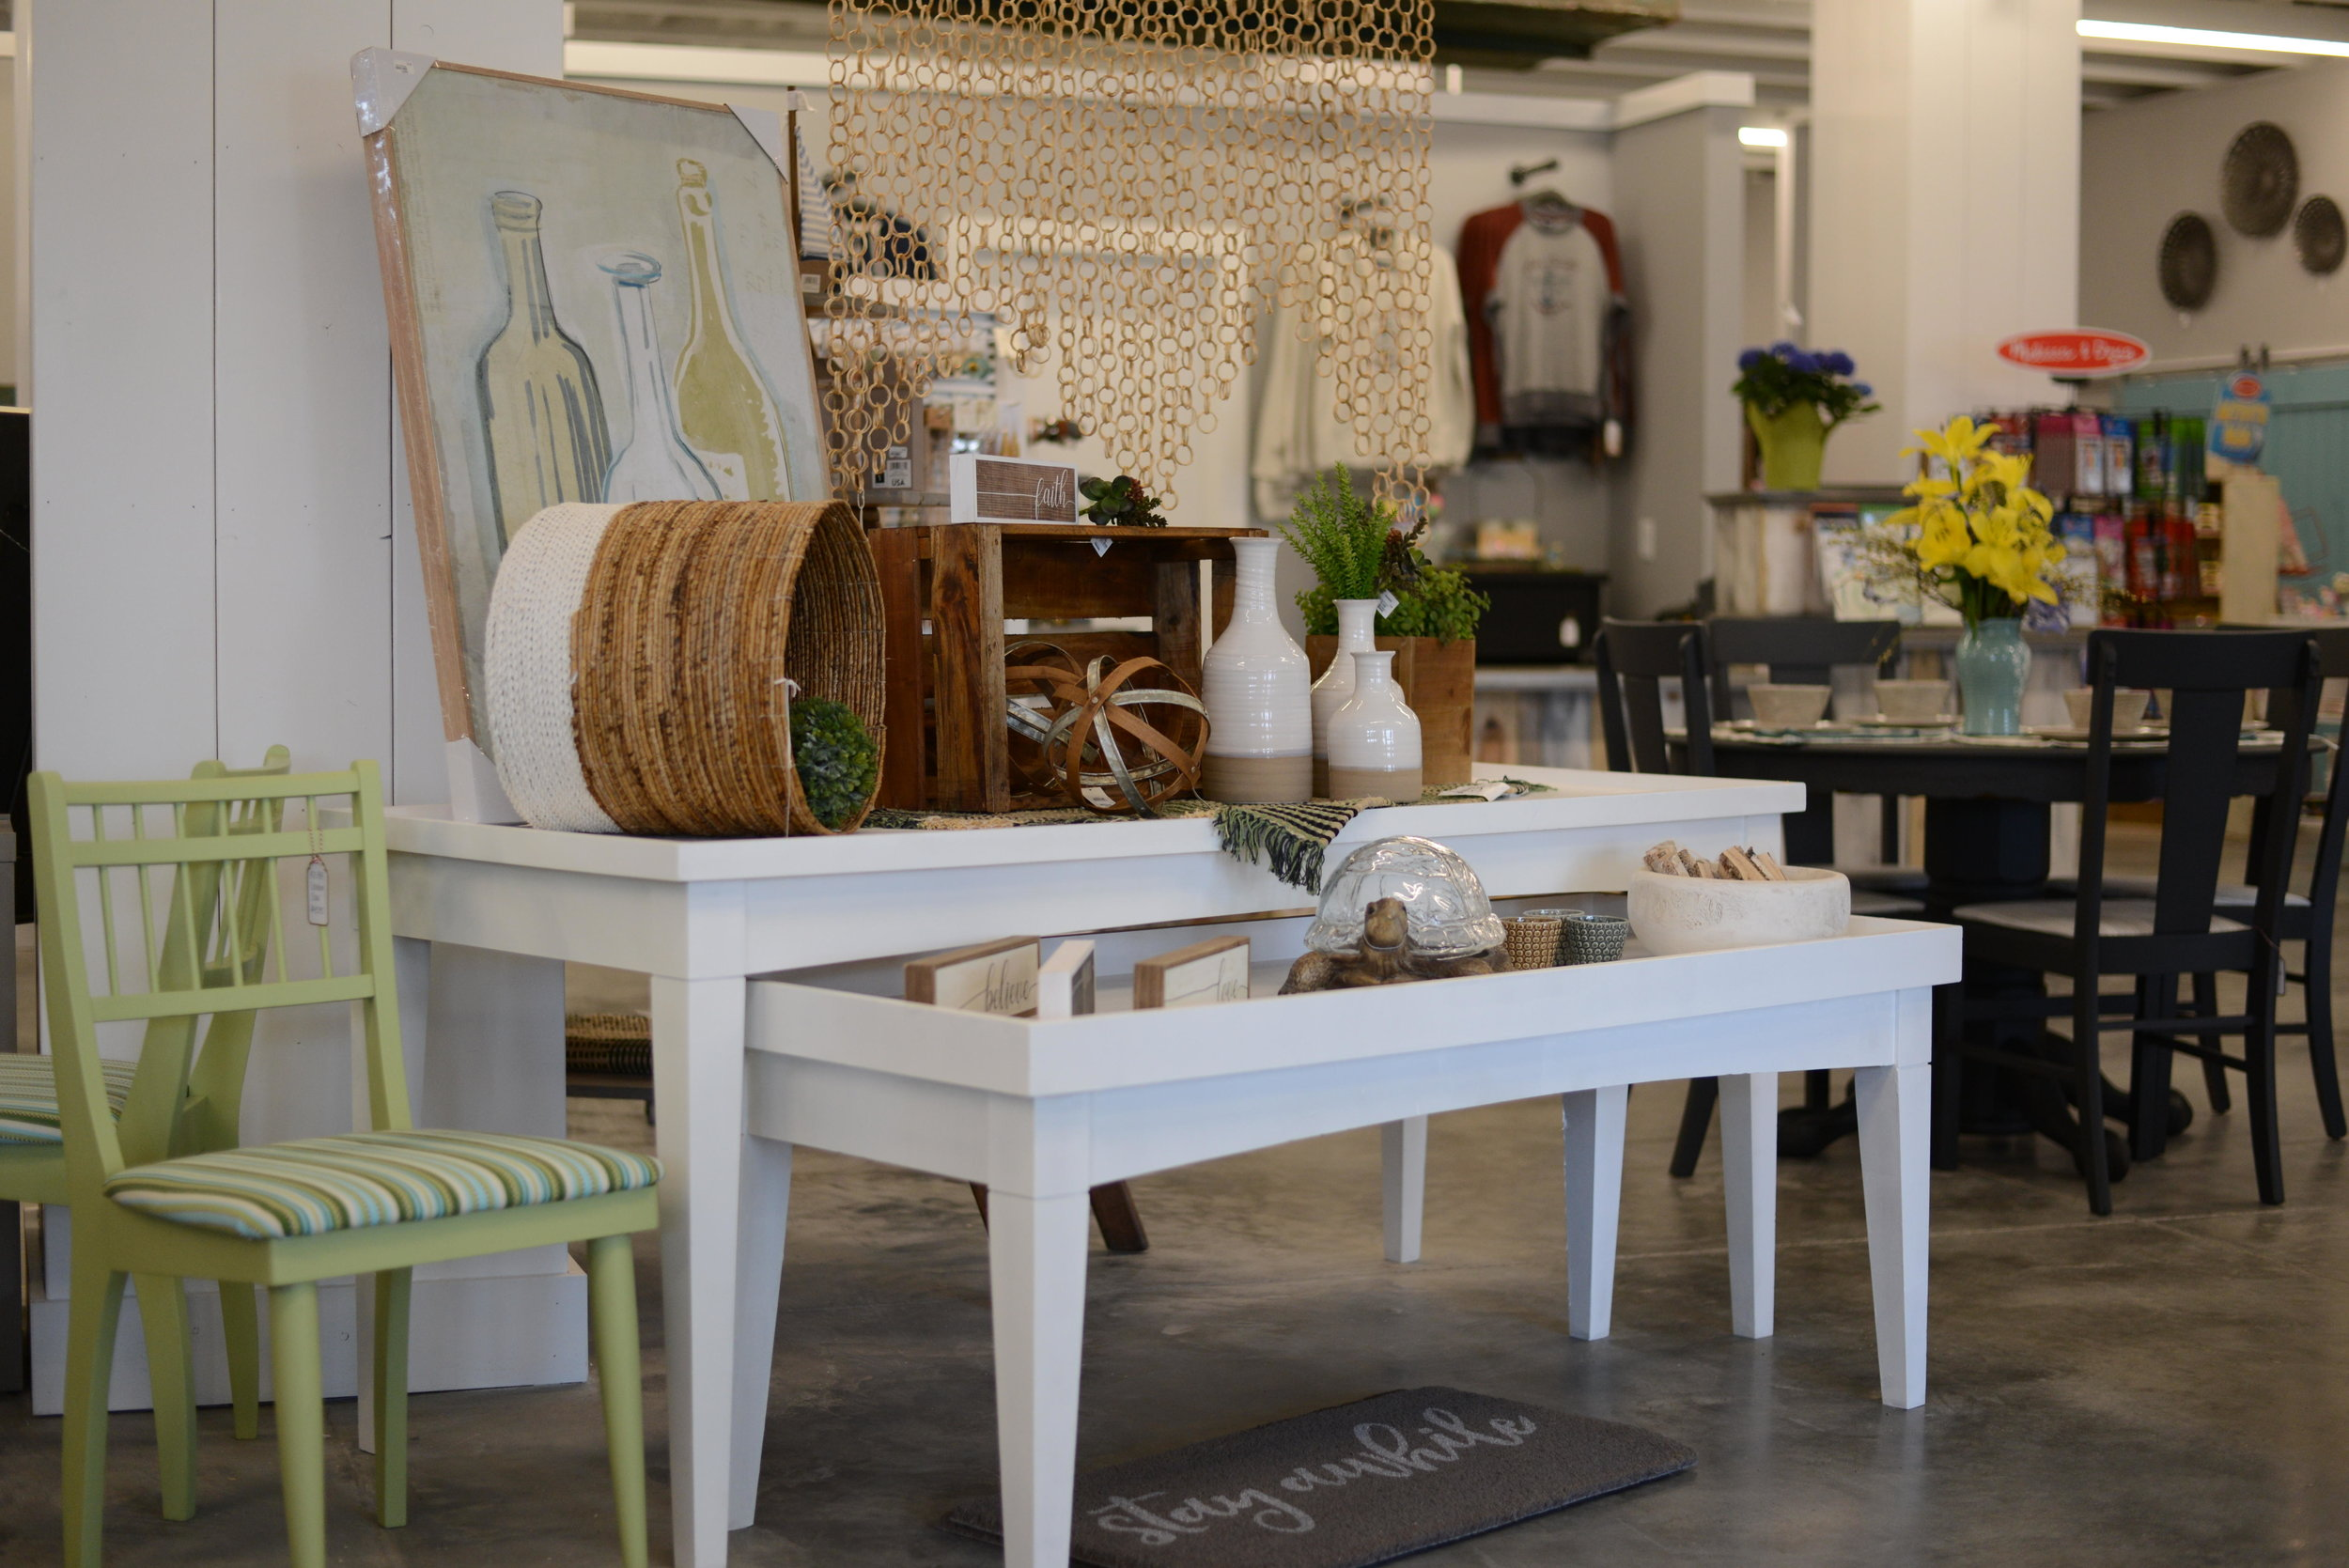 """Everything from furniture to souvenirs is on sale at Periwinkle Marketplace in Ottertail. """"It's a fun lake place,"""" Owner Stephanie Ellingson said. (Carter Jones/ FOCUS)"""